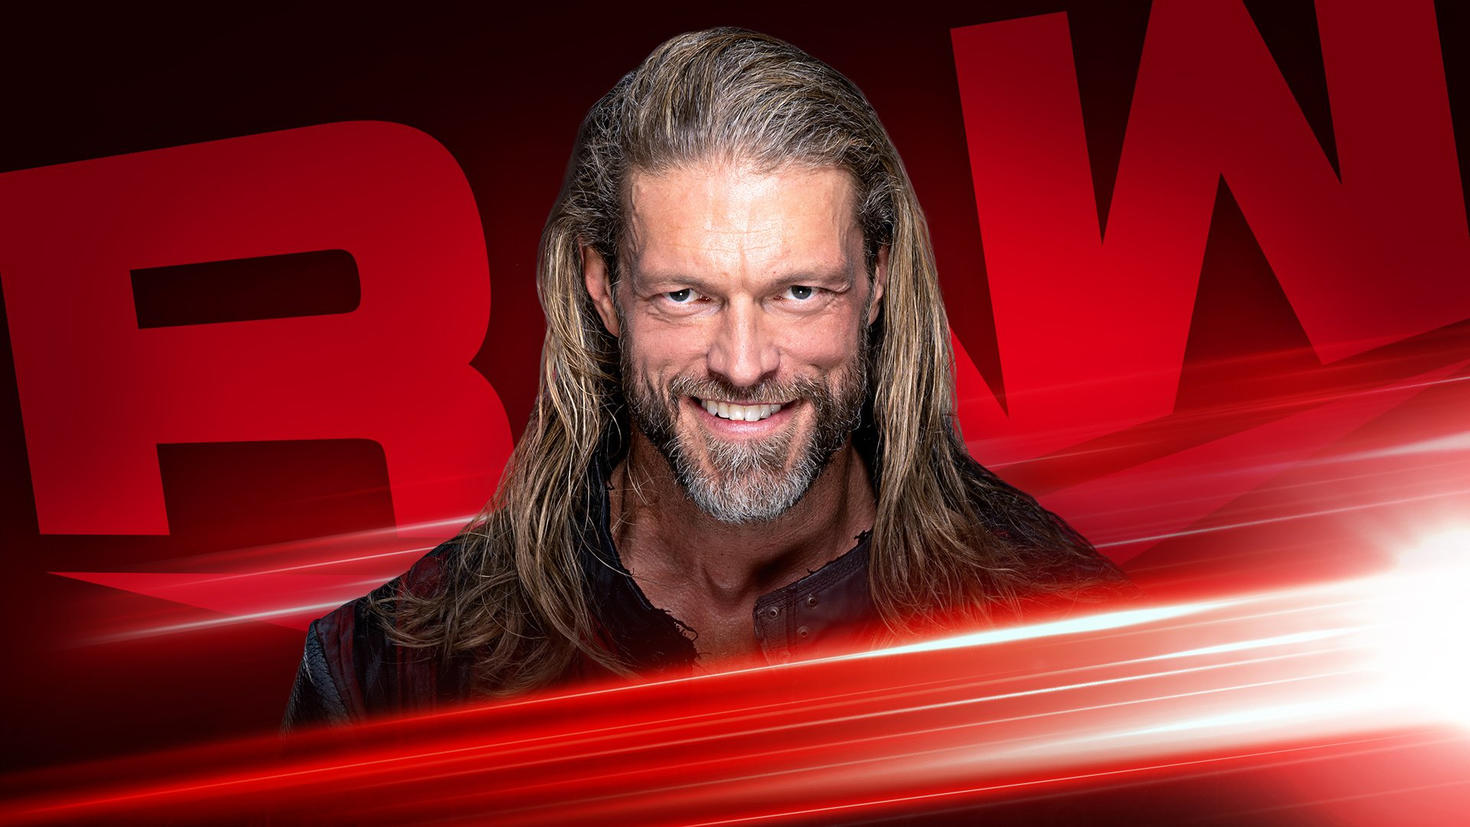 WWE Raw Preview (30/03/20): Undertaker, Edge, Brock Lesnar Appears; Go-Home Wrestlemania Episode 2